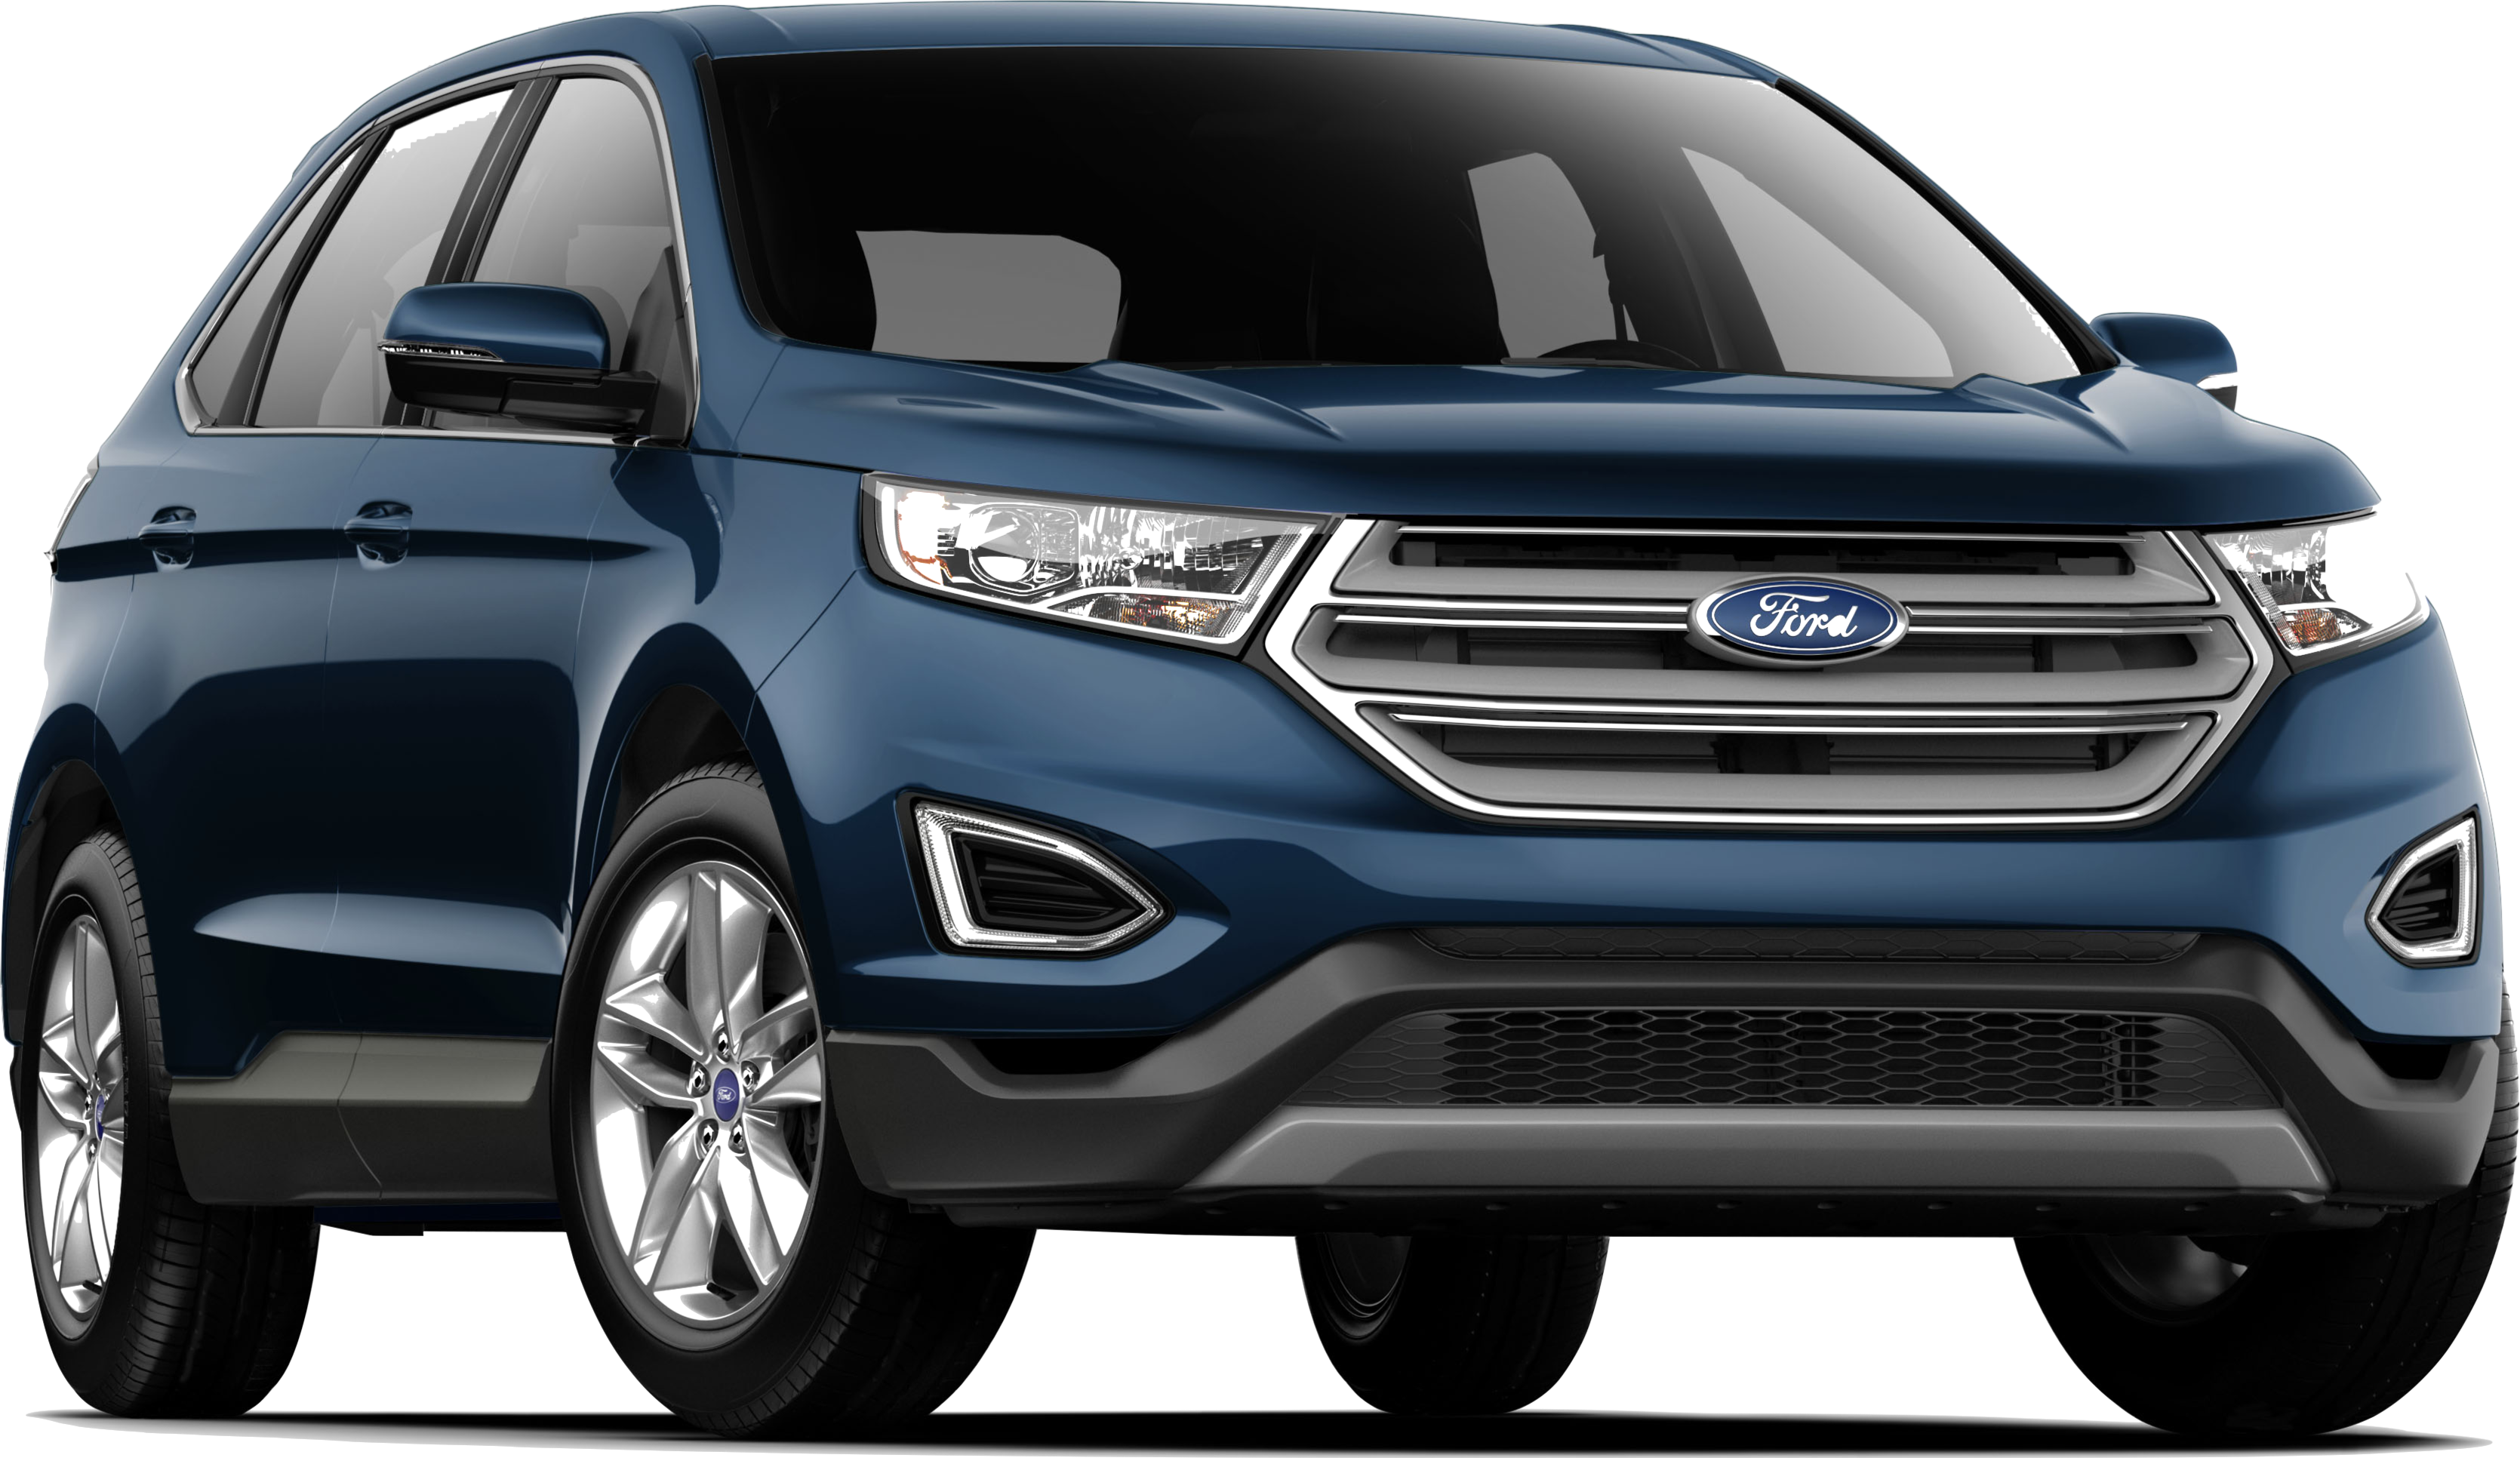 Ford Edge Lease in North Riverside, IL